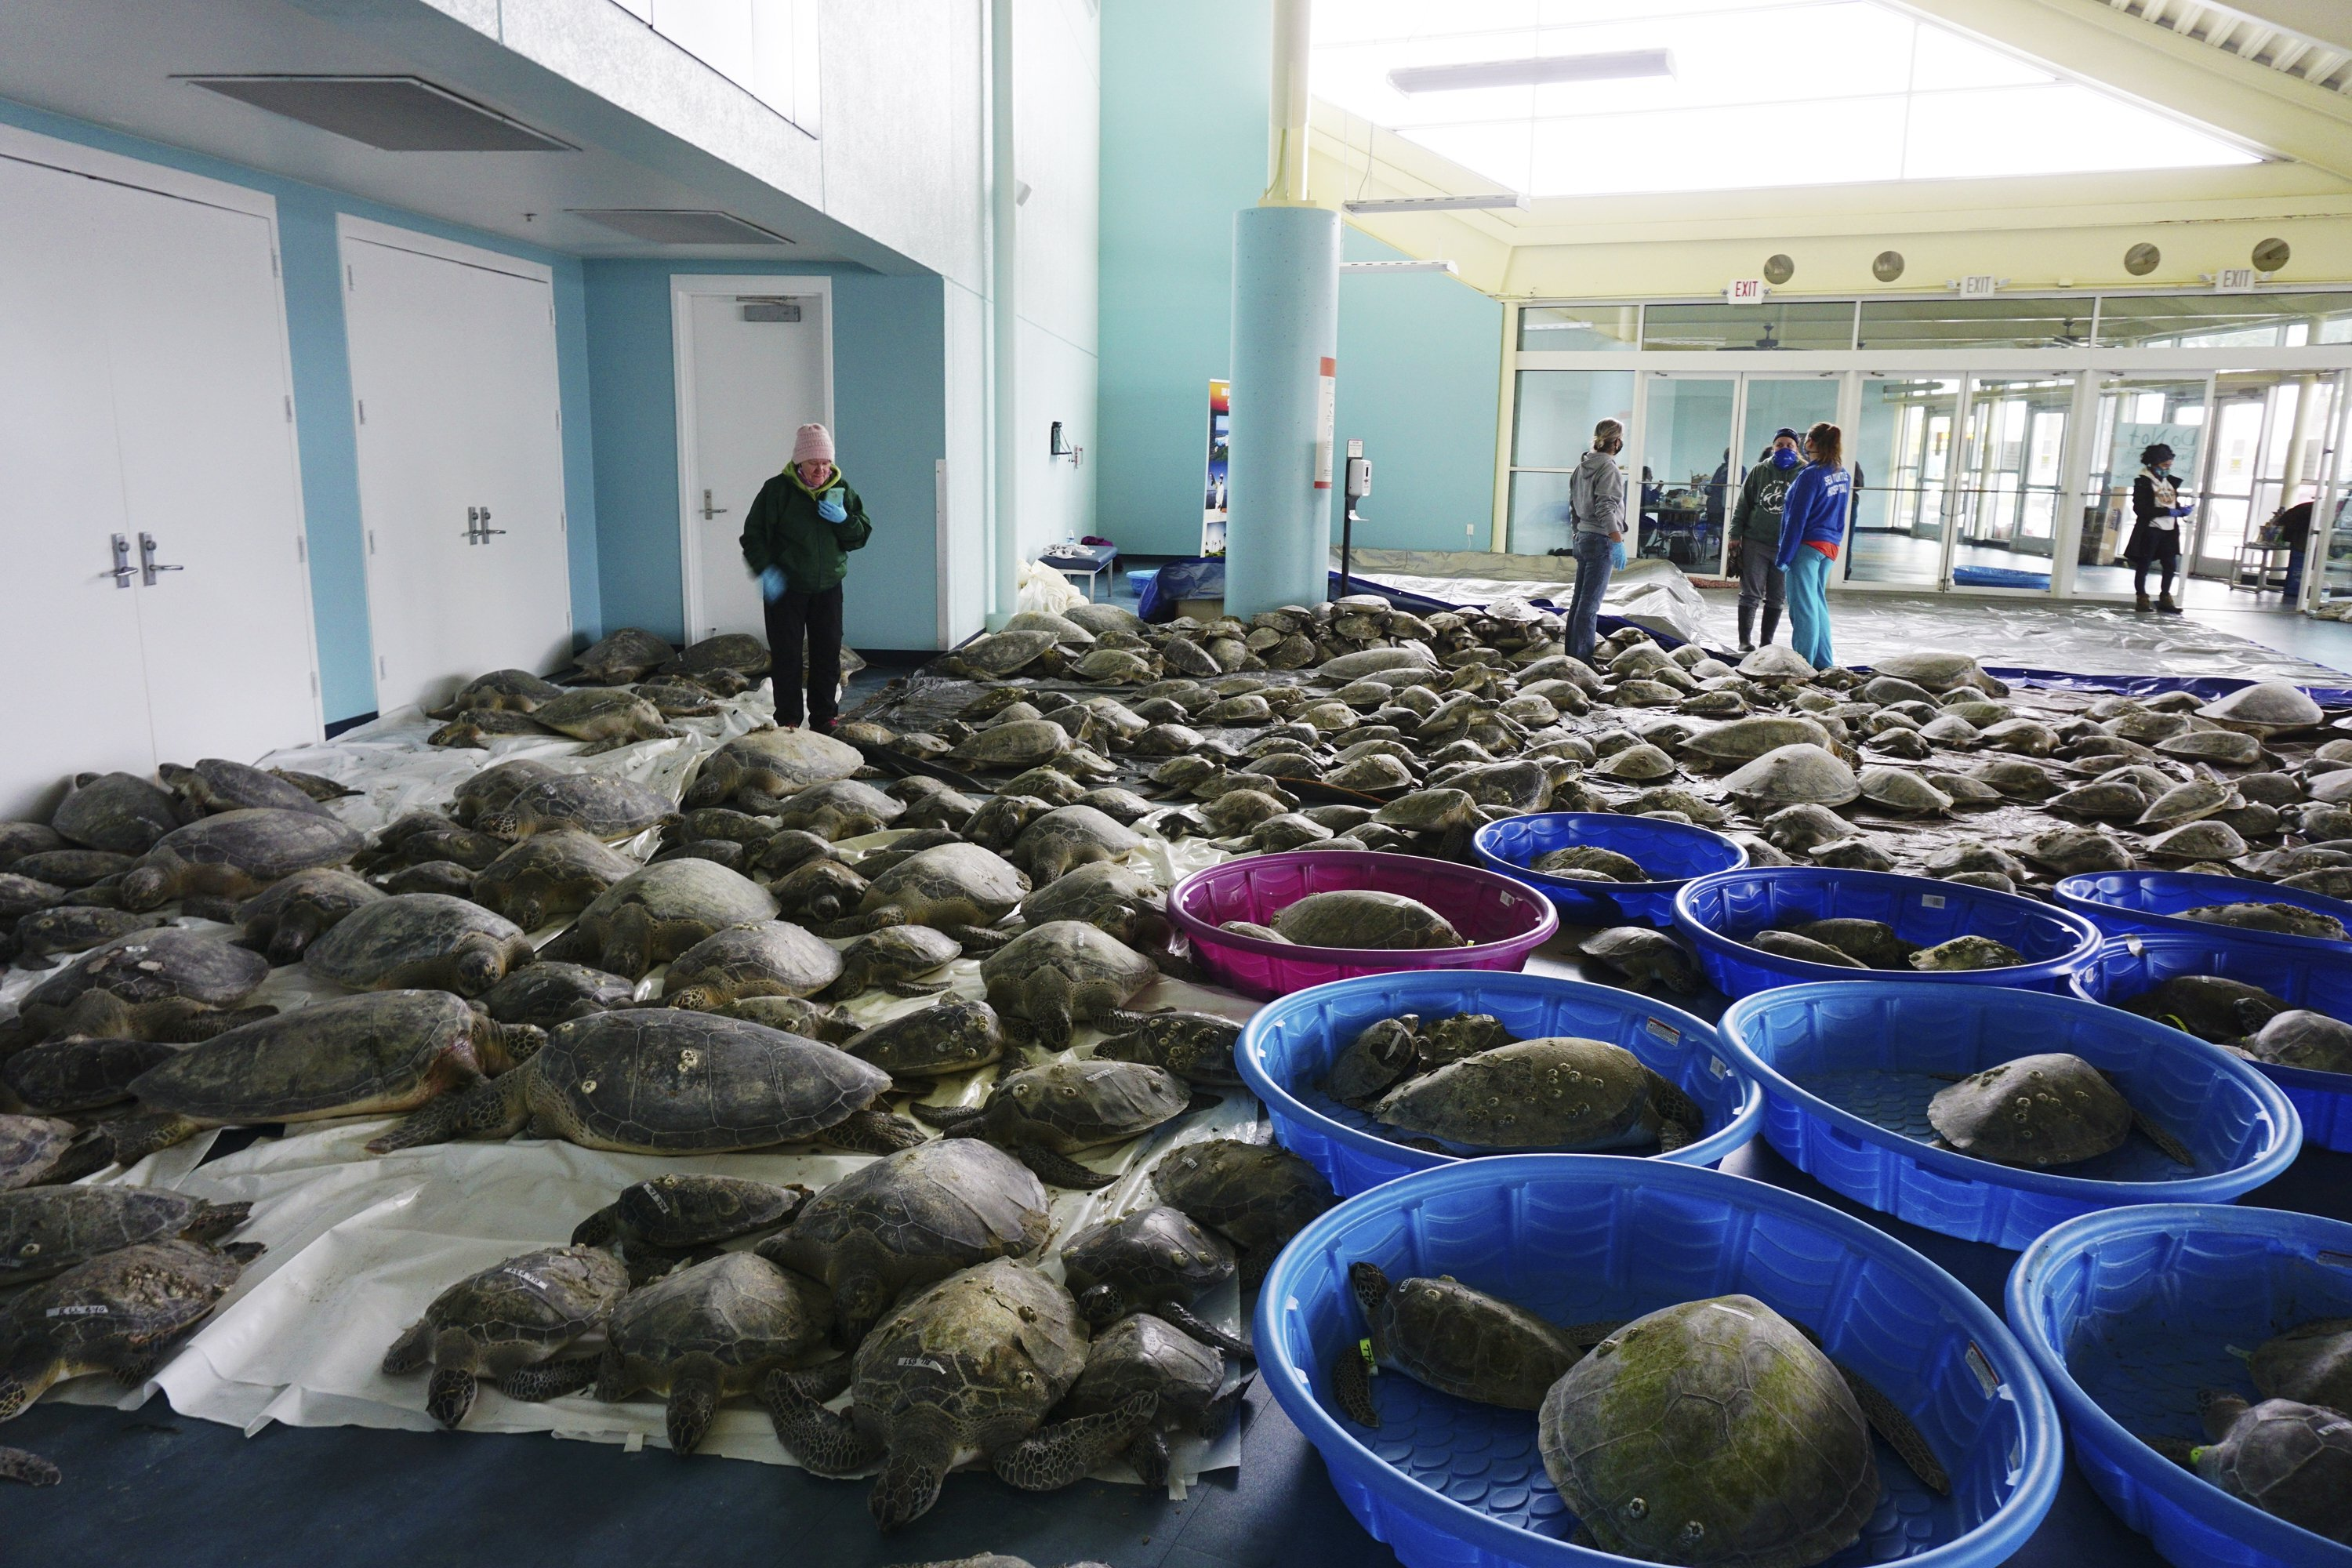 Thousands of Atlantic green sea turtles and Kemp's Ridley sea turtles suffering from cold stun are laid out to recover at the South Padre Island Convention Center on South Padre Island, Texas, the U.S., Feb. 16, 2021. (The Brownsville Herald via AP)